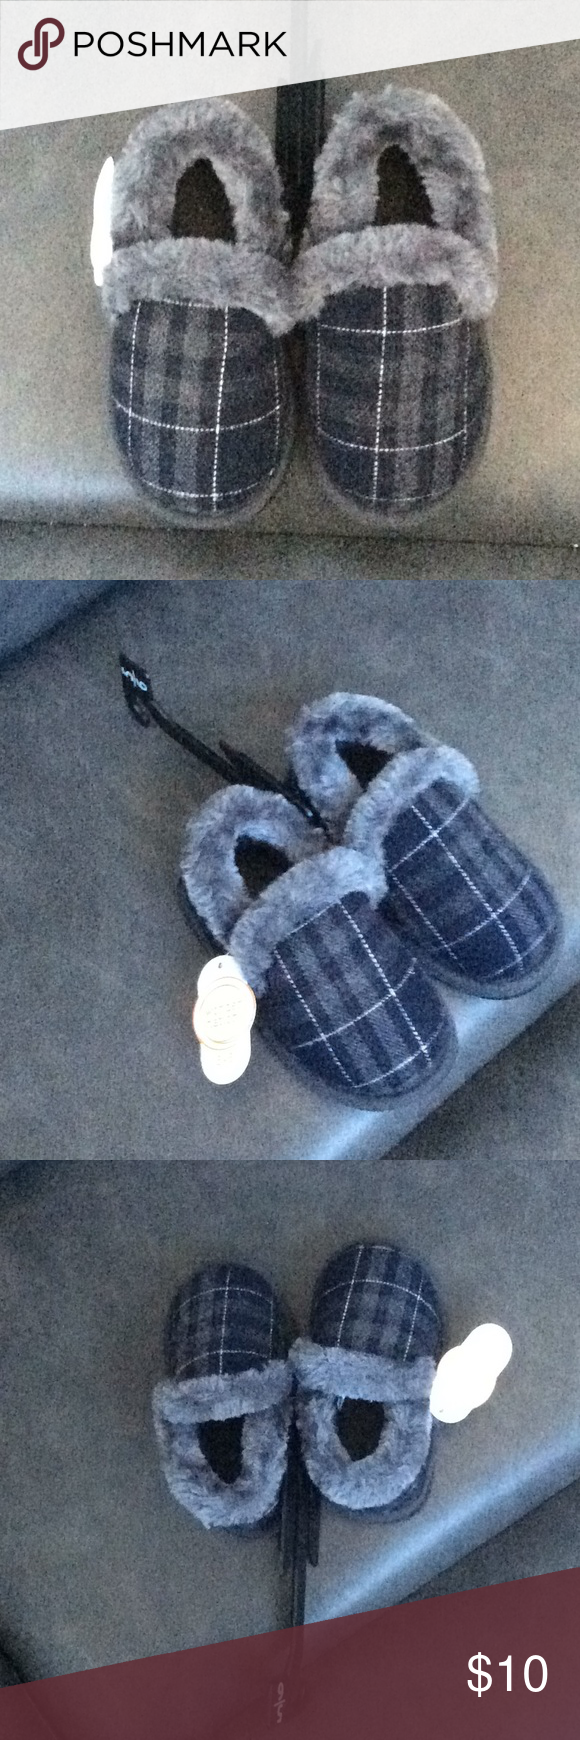 Baby bed slippers   Baby bed, Slippers